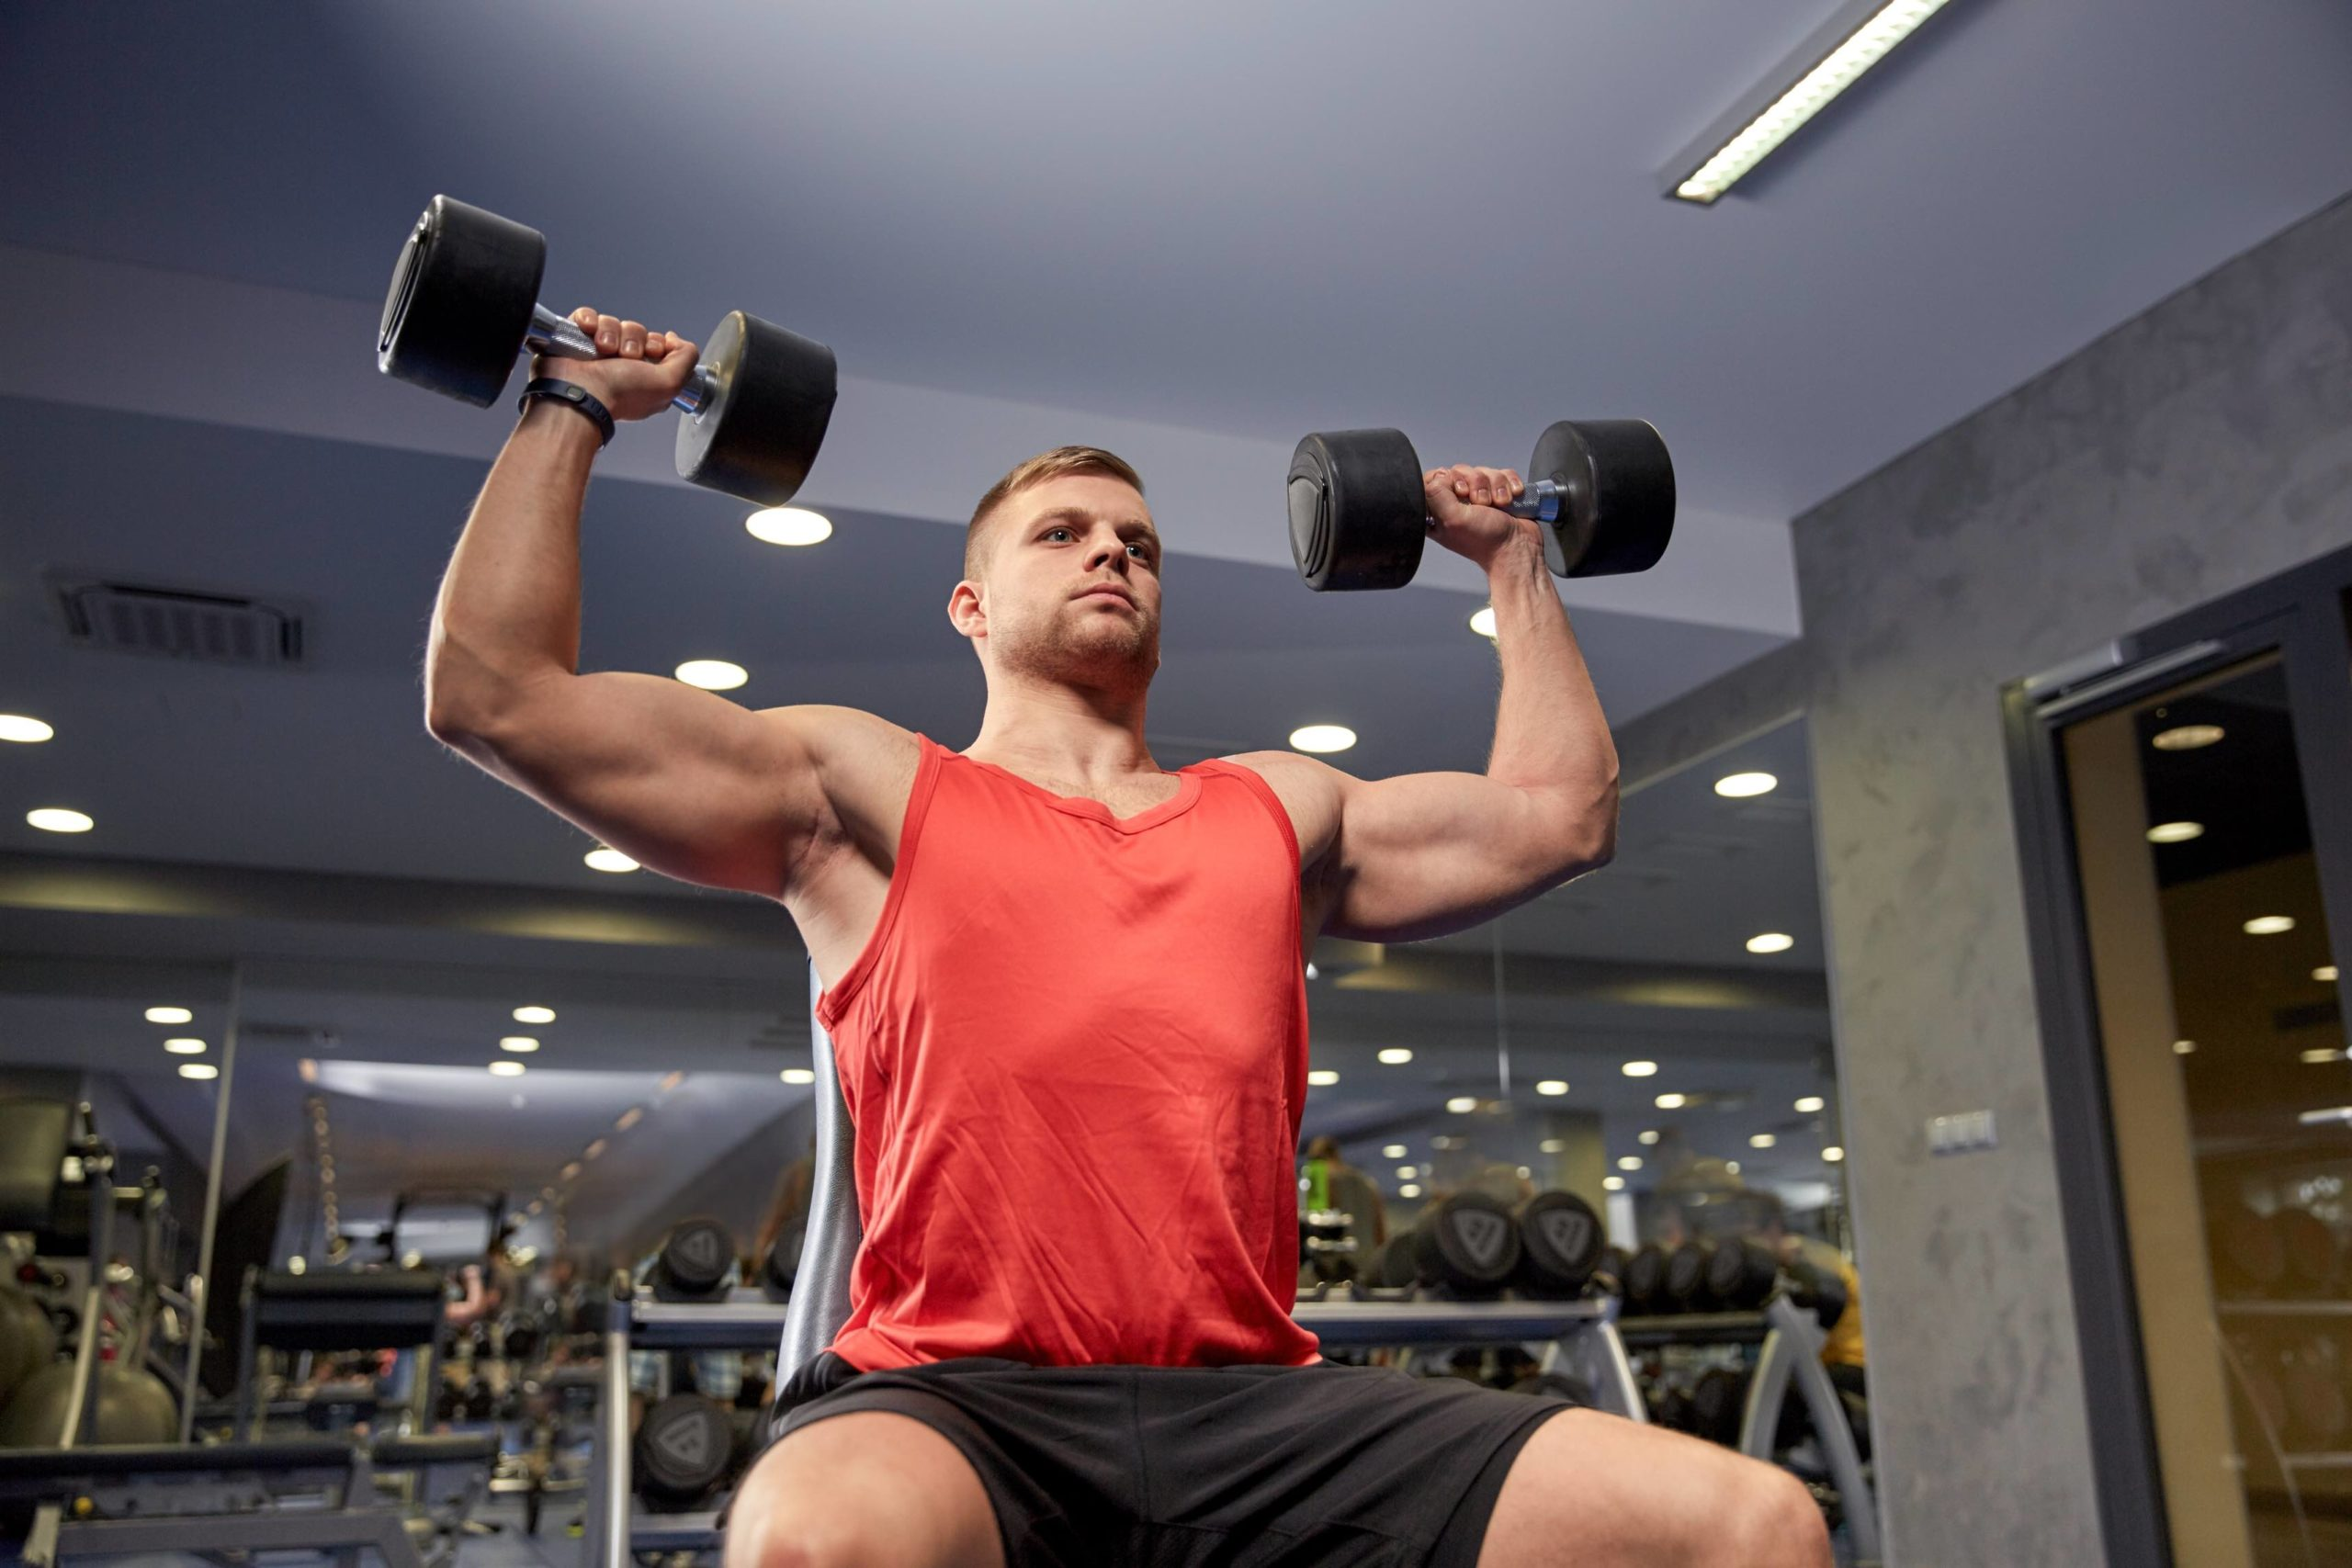 Absolute strength can be more important than muscle mass